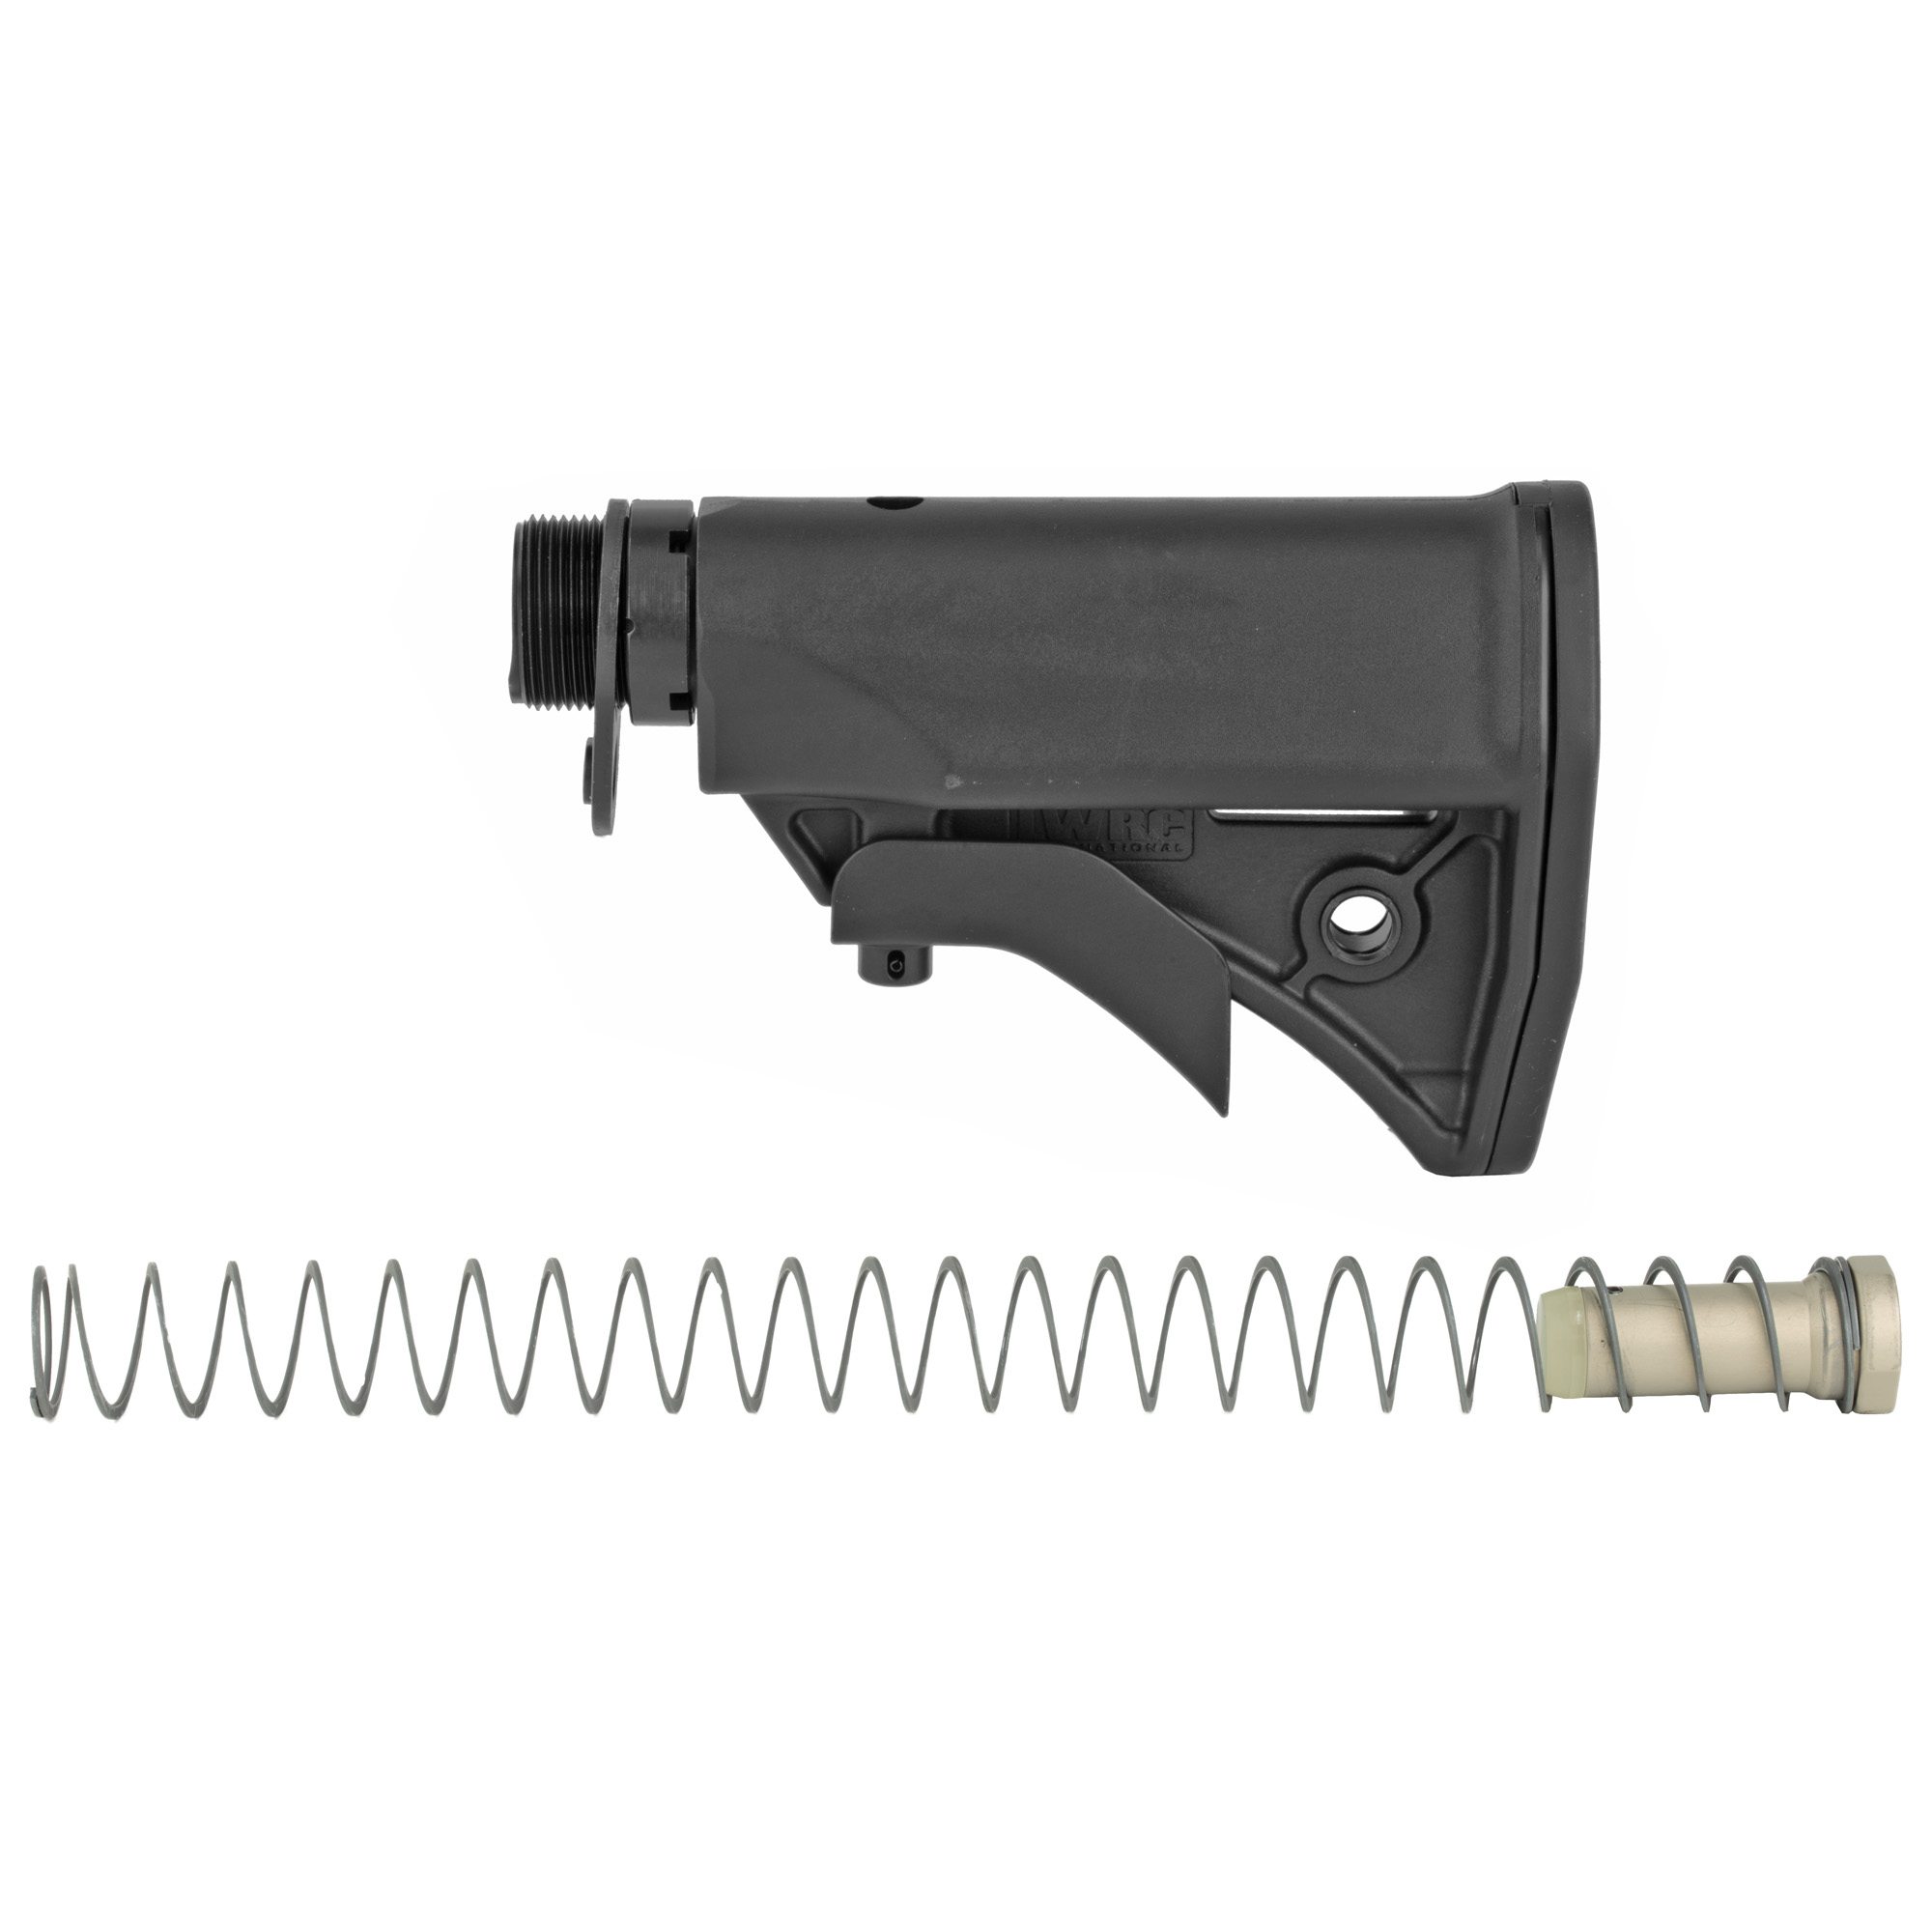 "THE LWRC UCIW (ULTRA-COMPACT INDIVIDUAL WEAPON) STOCK SYSTEM SHORTENS THE OVERALL LENGTH OF THE FIREARM BY A FULL INCH"" AS COMPARED TO A STANDARD AR. THE STOCK KIT INCLUDES THE STOCK"" RECEIVER EXTENSION"" INDEX PLATE"" BUFFER"" RECOIL SPRING AND CASTLE NUT. THE SYSTEM'S COMPONENTS WERE DESIGNED TO WORK TOGETHER AND SHOULD BE INSTALLED TOGETHER FOR RELIABLE PERFORMANCE. THE STOCK IS LIGHTWEIGHT AND FEATURES INTEGRAL SLING ATTACHMENT POINTS"" EASY ONE-HAND ADJUSTMENTS AND EXCELLENT CHEEKWELD. THE RUBBER BUTTPAD PREVENTS SLIPPAGE DURING FIRING. THE RECEIVER EXTENSION HAS FOUR POSITIONS TO ADJUST THE LENGTH OF PULL. DERIVED FROM OUR UCIW PROJECT"" IT IS A GREAT OPTION FOR SHORTENING THE OVERALL LENGTH OF YOUR RIFLE."